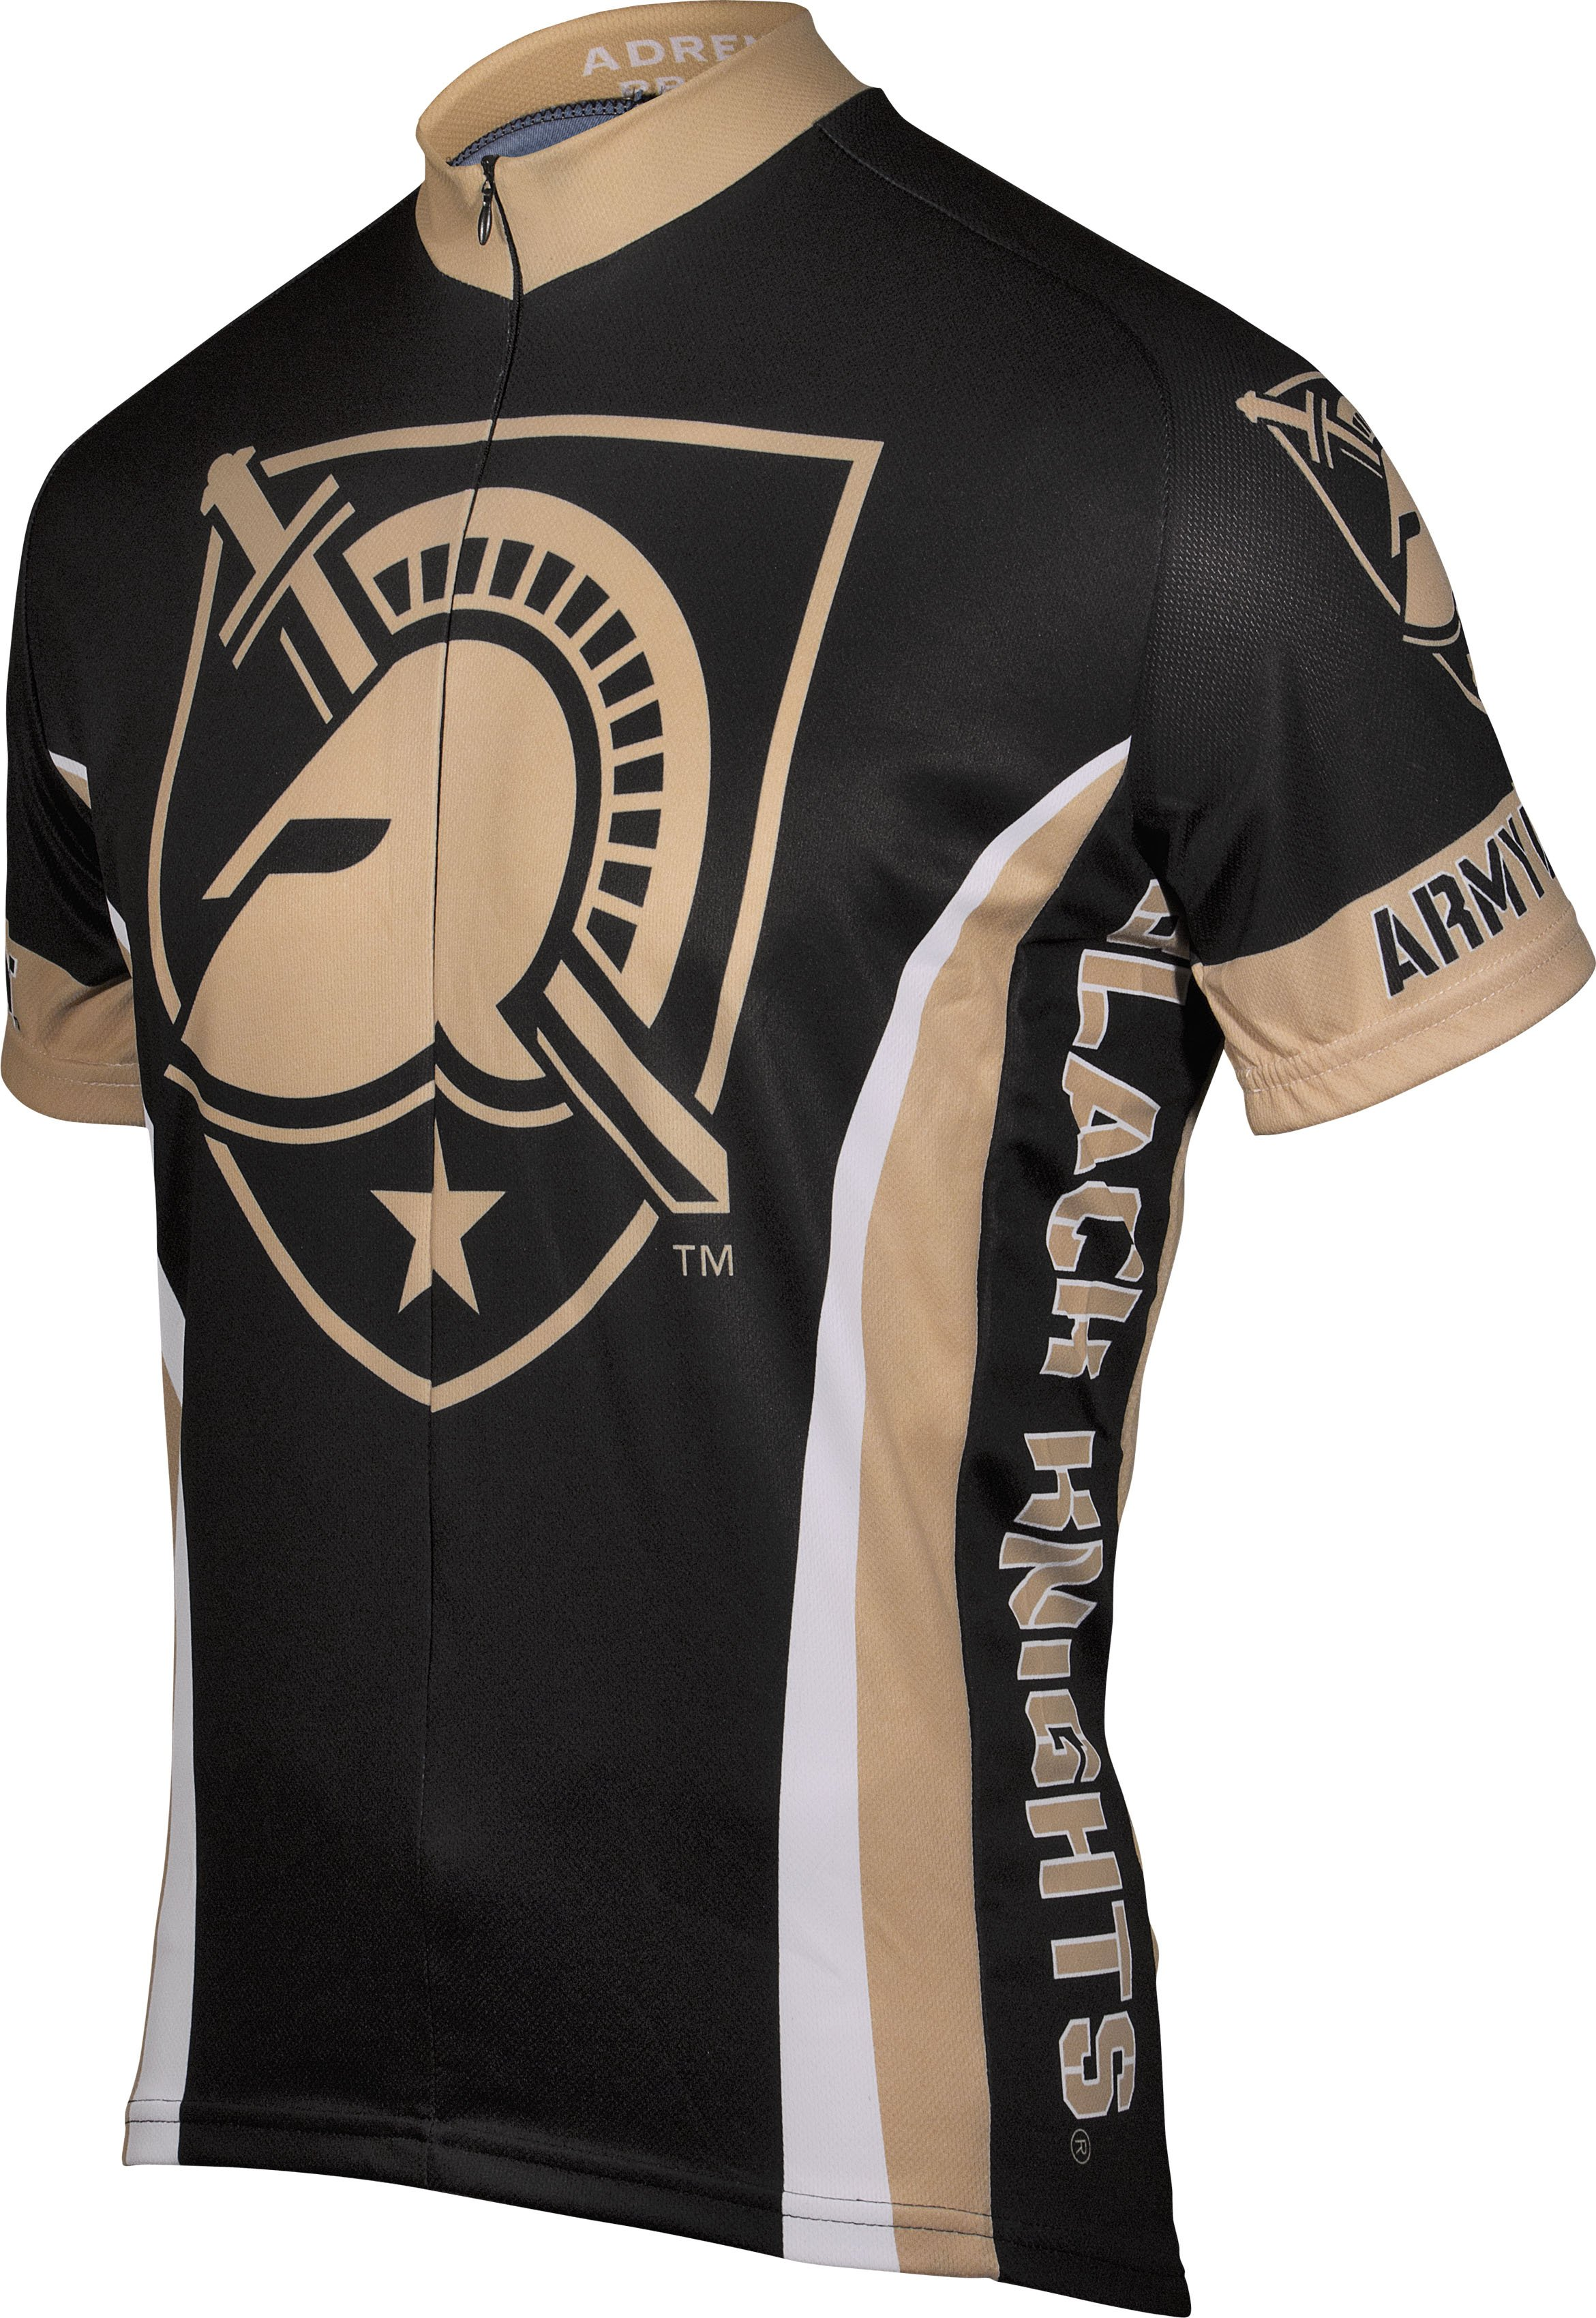 West Point Military Academy (ARMY) Cycling Jersey